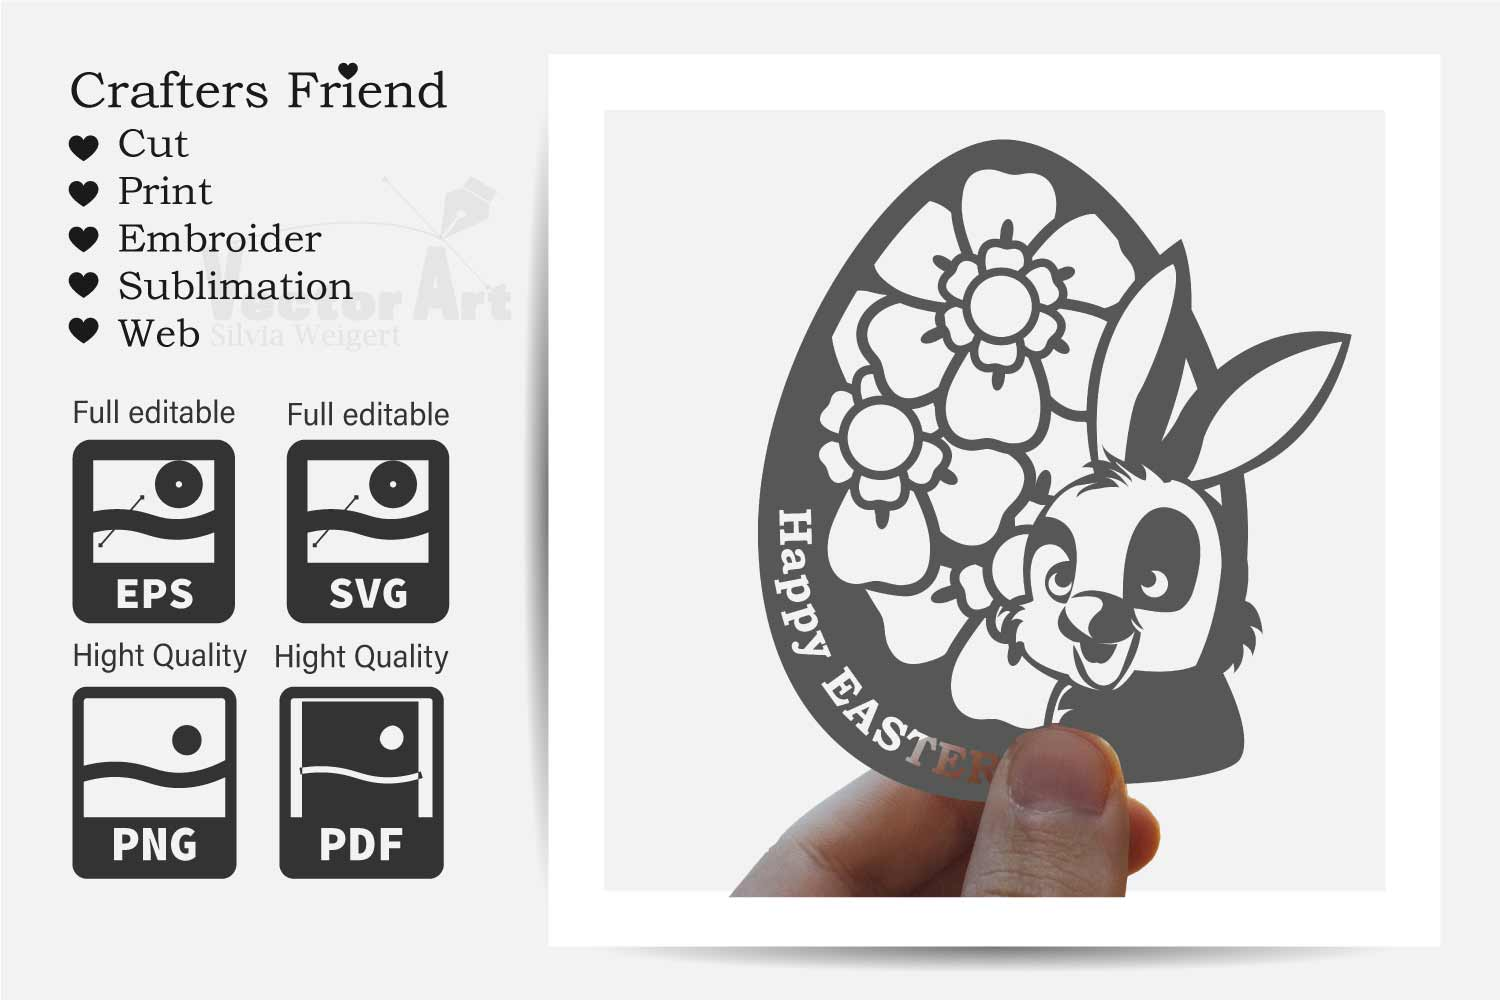 Happy Easter - Bunny in Egg with Flower - Print and Cut example image 3